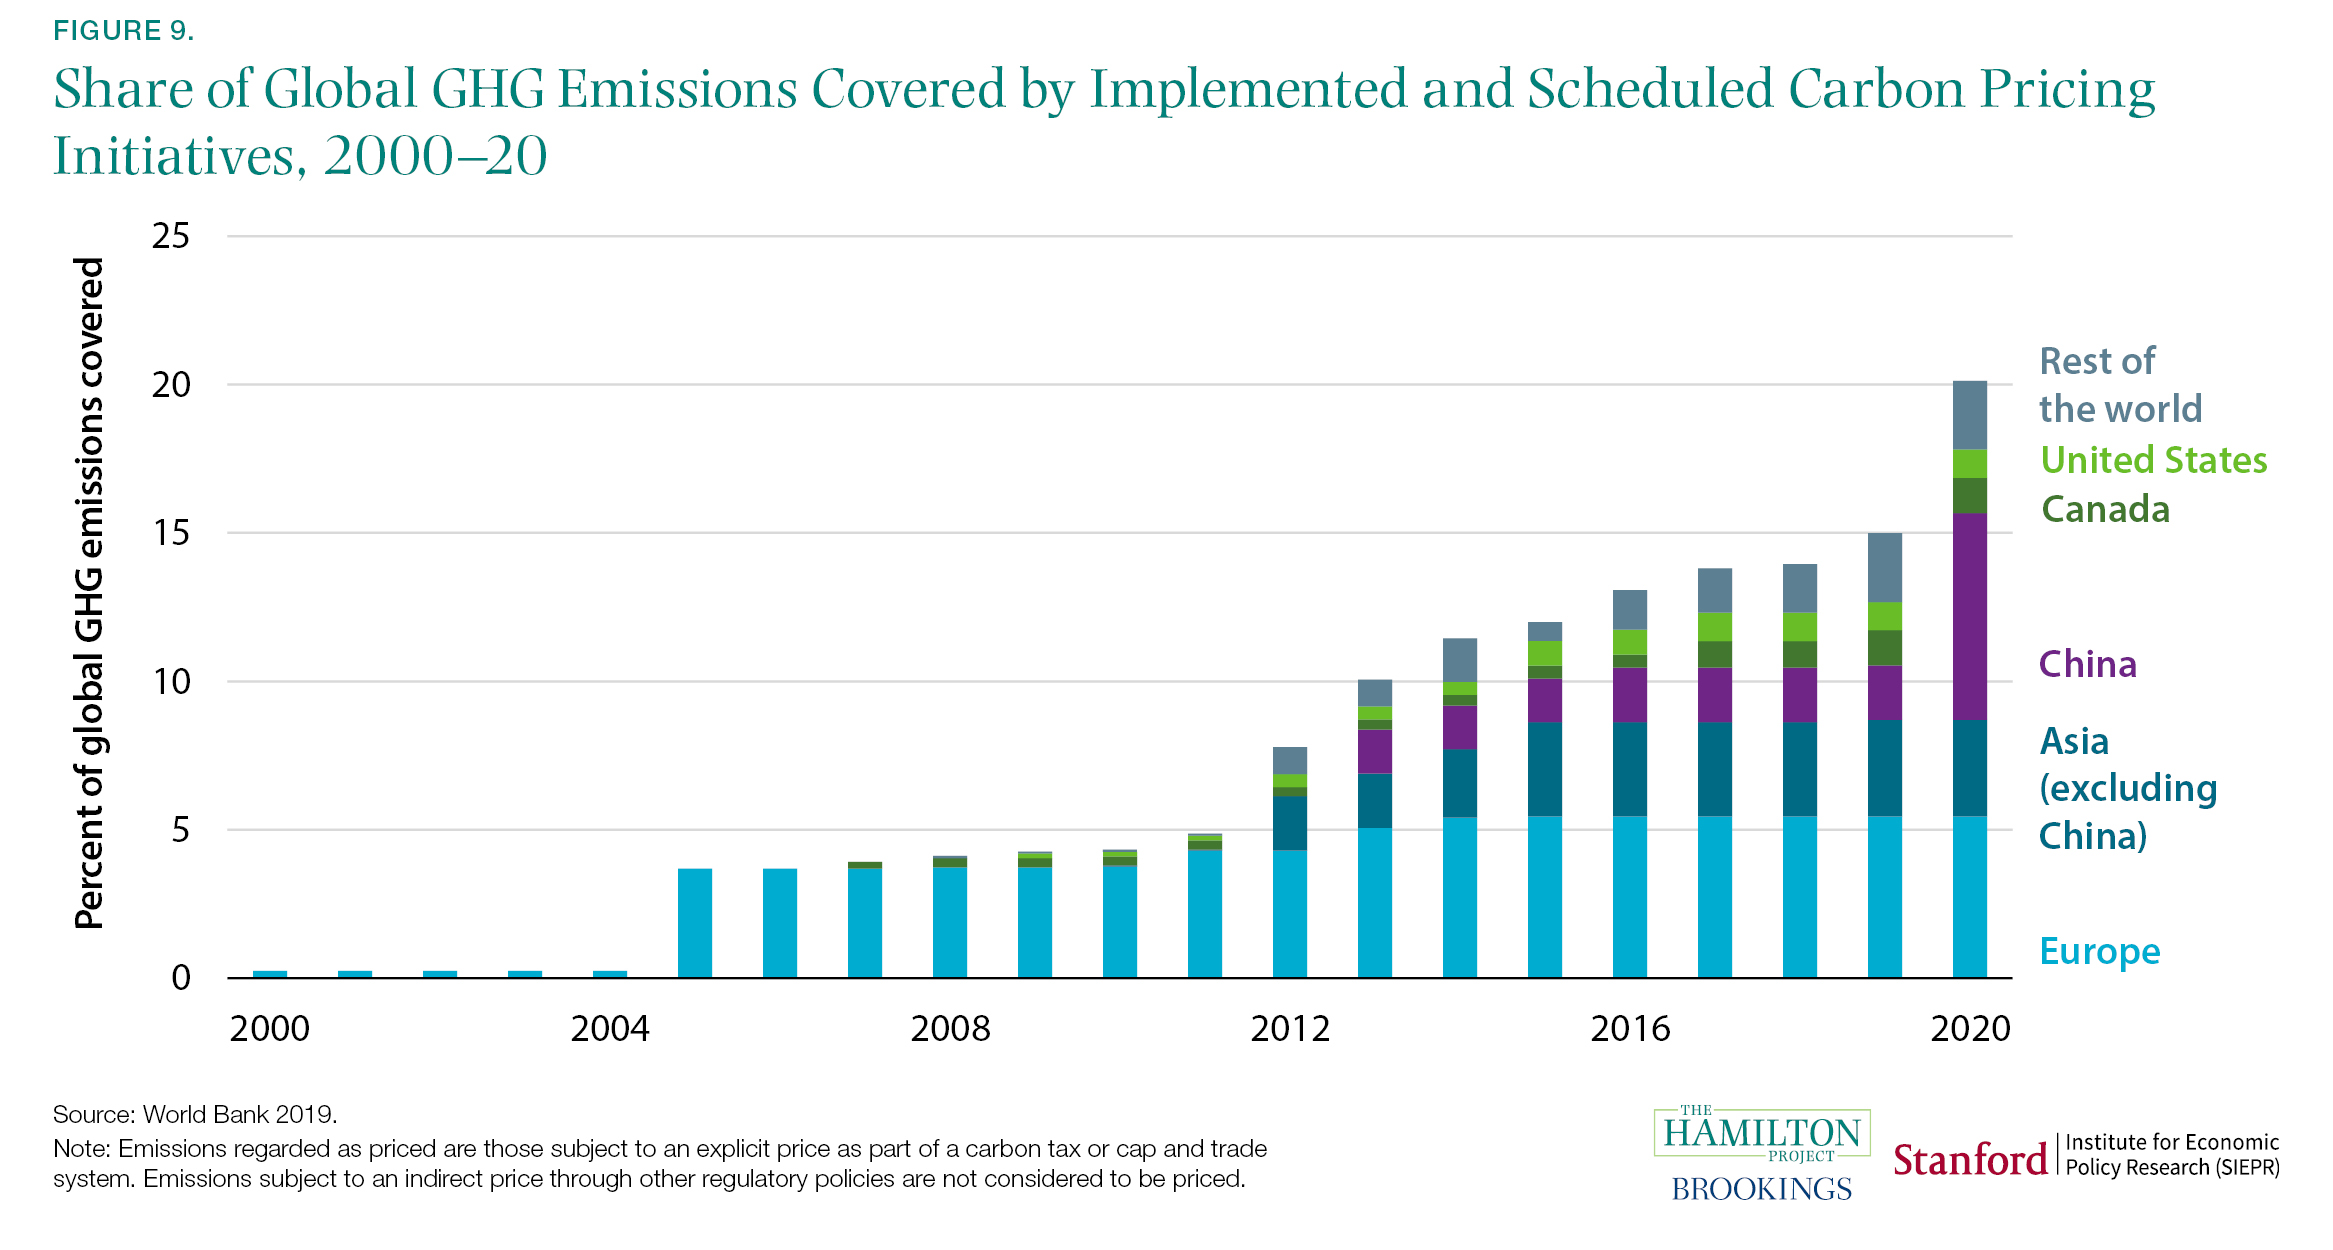 Share of Global GHG Emissions Covered by Implemented and Scheduled Carbon Pricing Initiatives, 2000-20